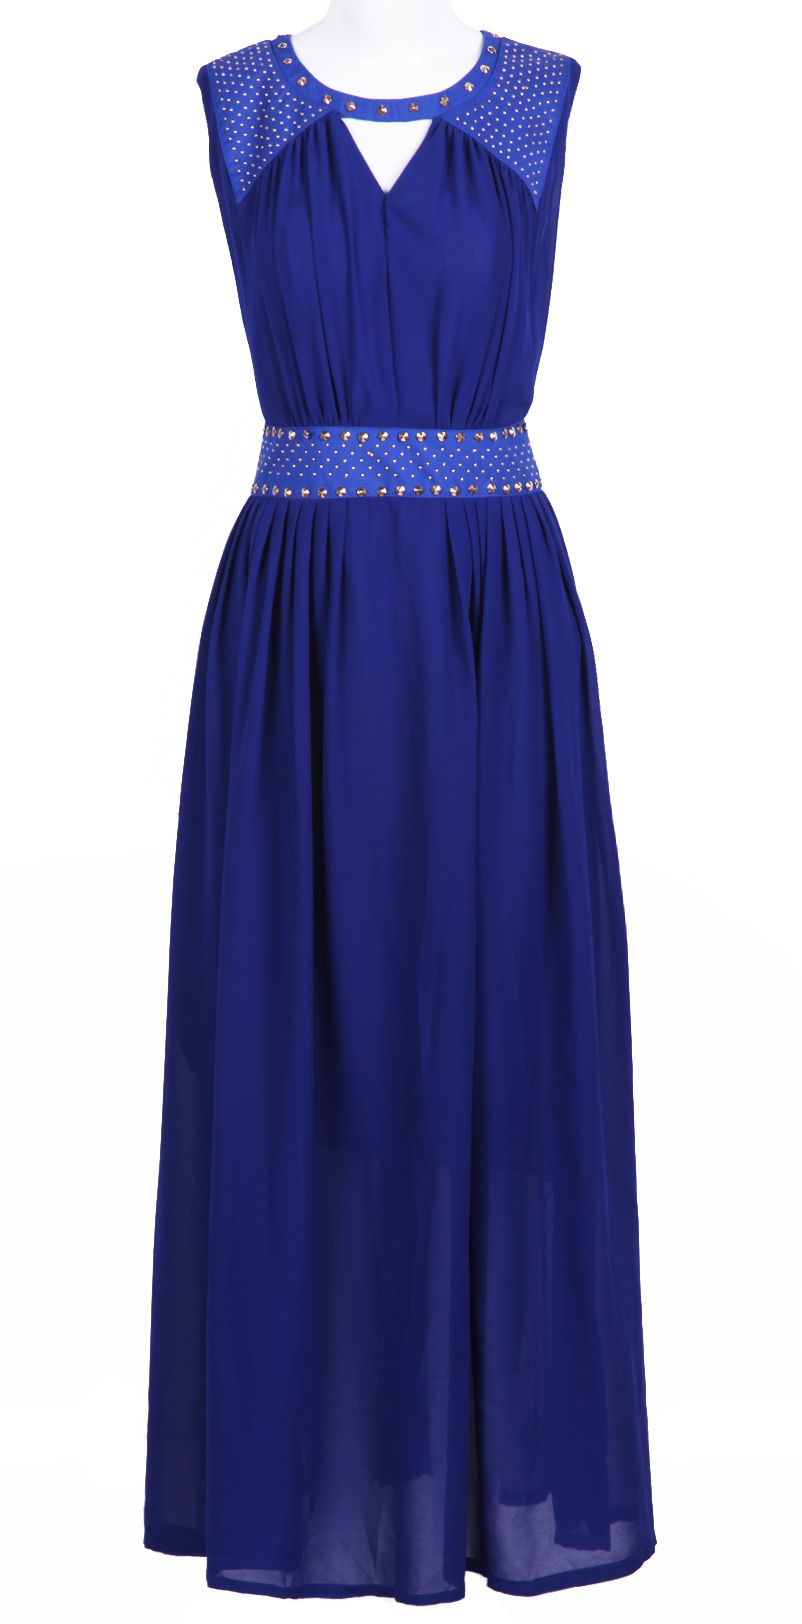 Royal blue maxi dresses pinterest beautiful maxi dresses and